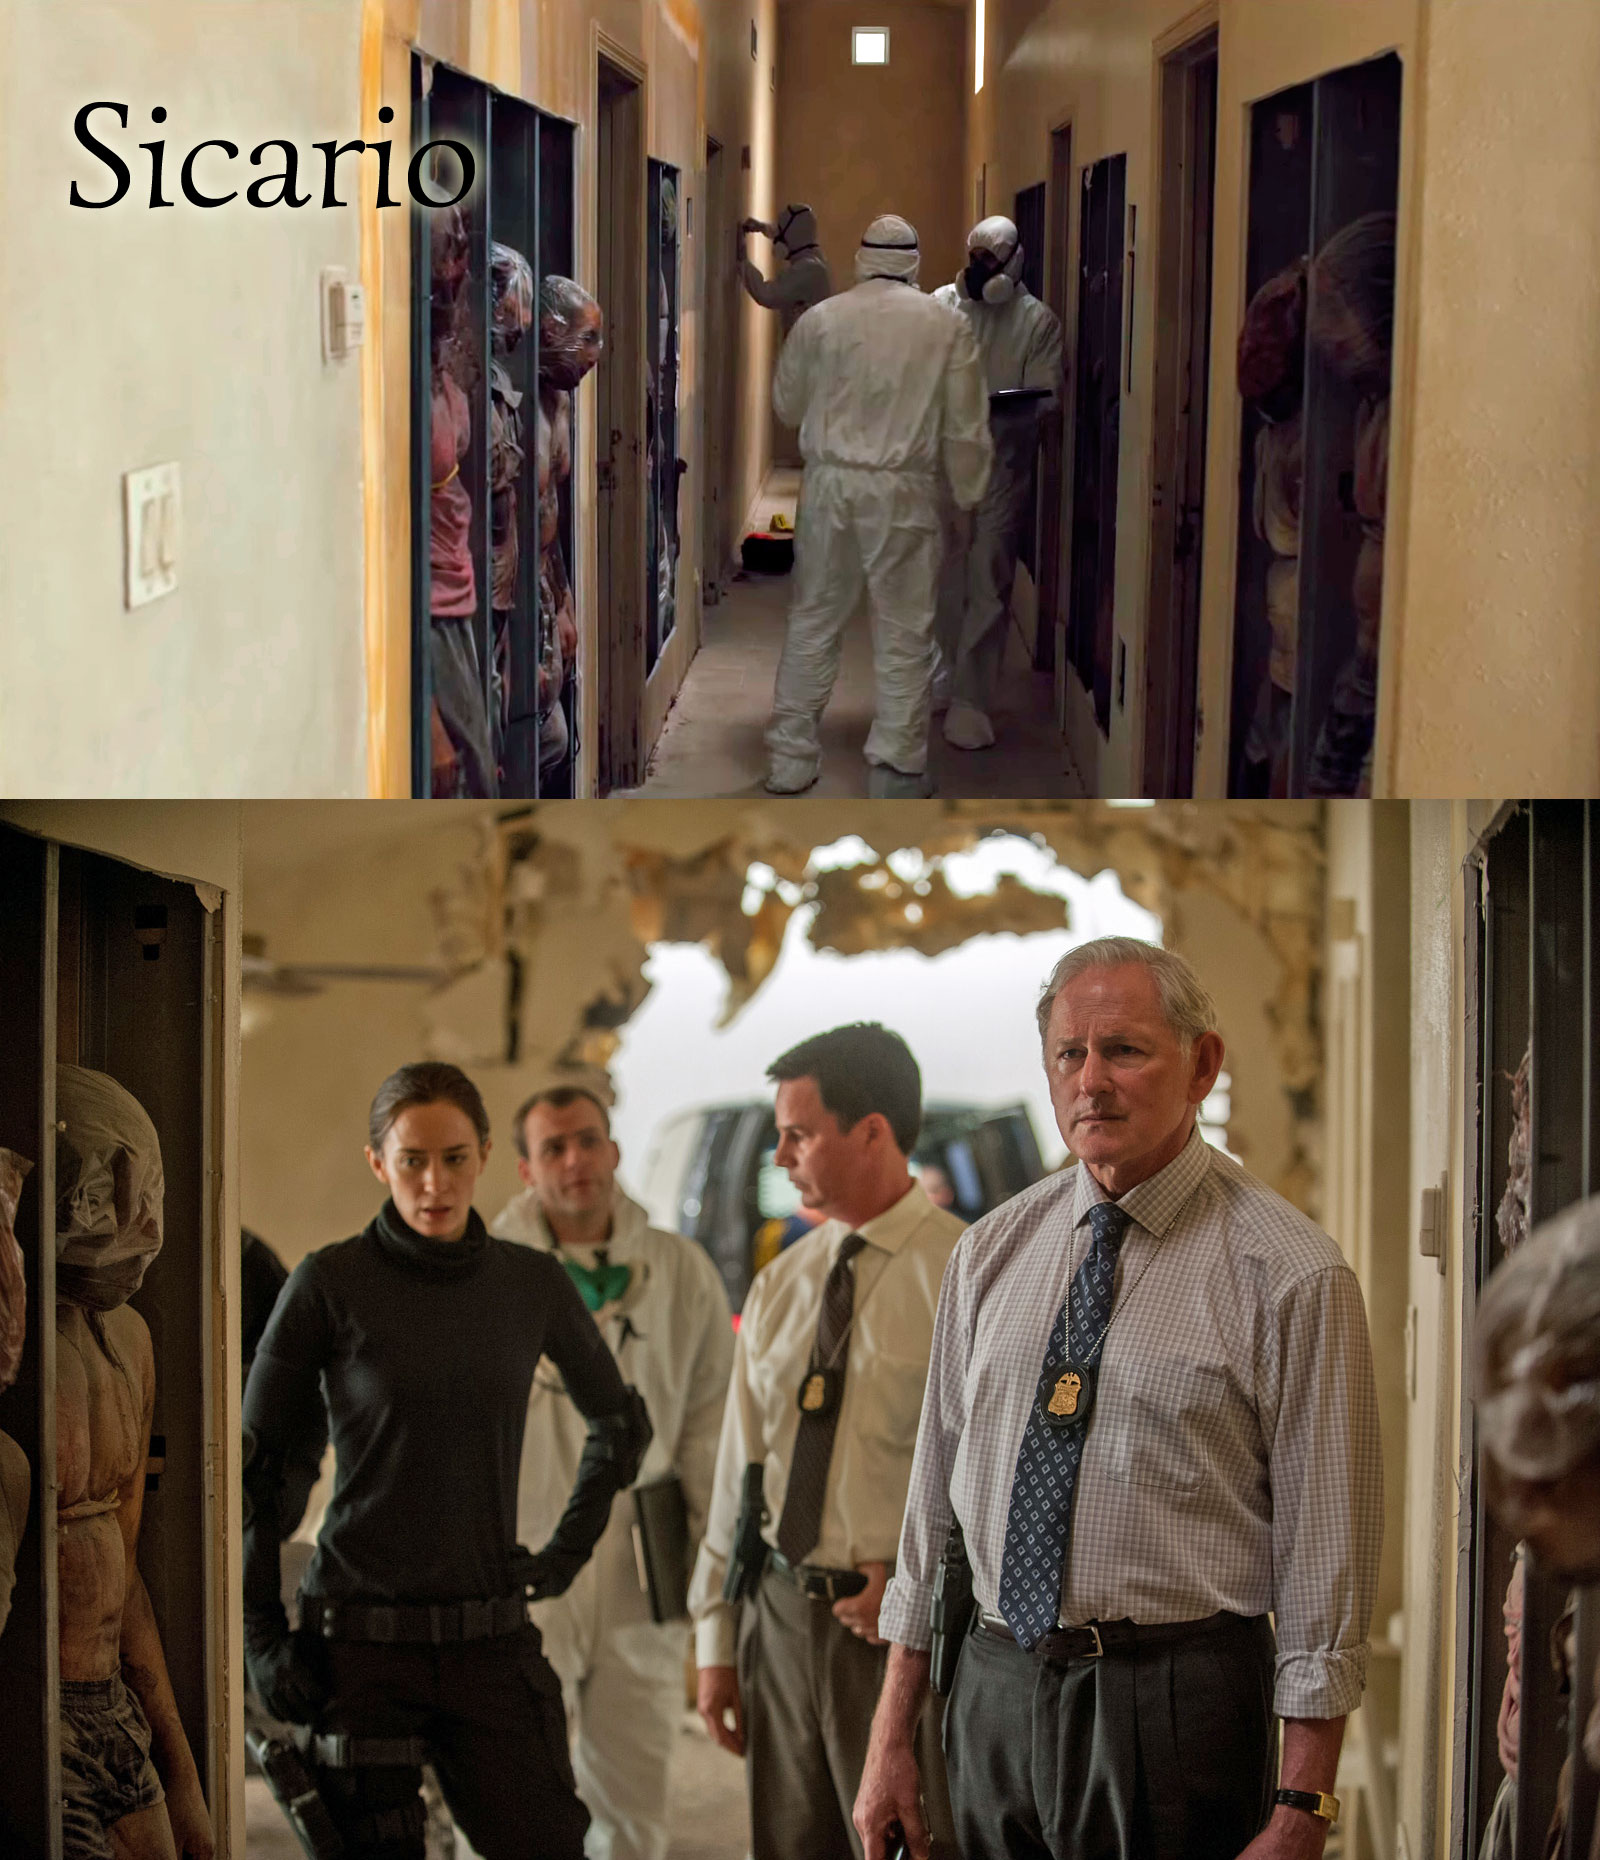 Sicario 2015 - Bodies in Walls | Book Addicts